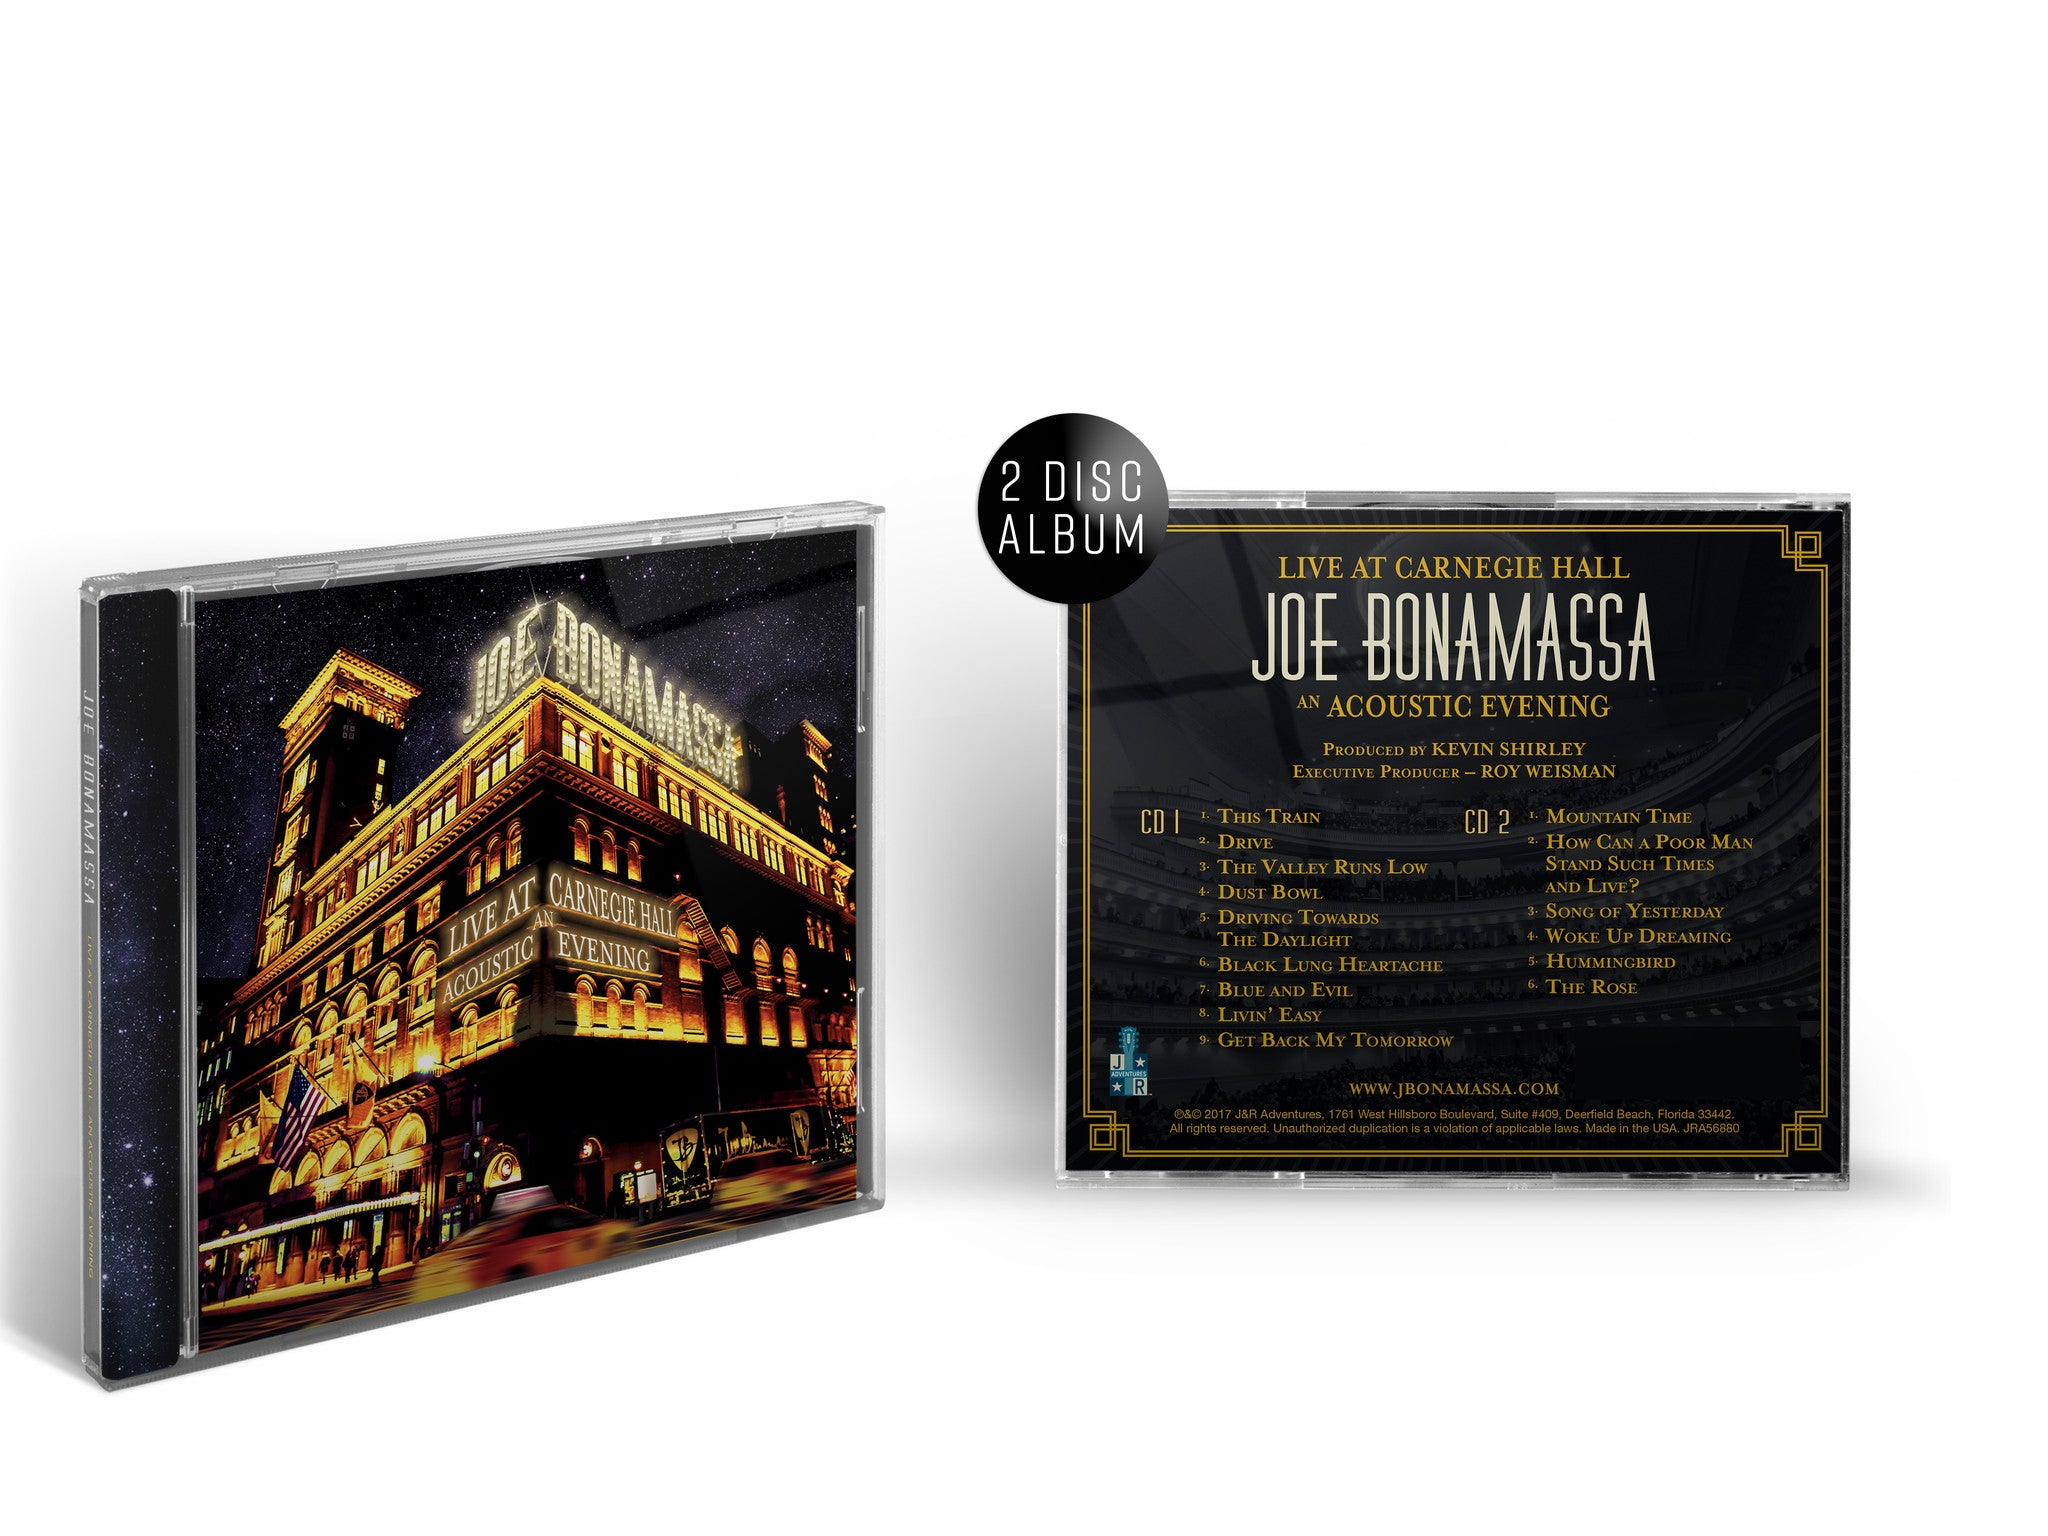 Joe Bonamassa: Live at Carnegie Hall - An Acoustic Evening (CD) (Released: 2017)